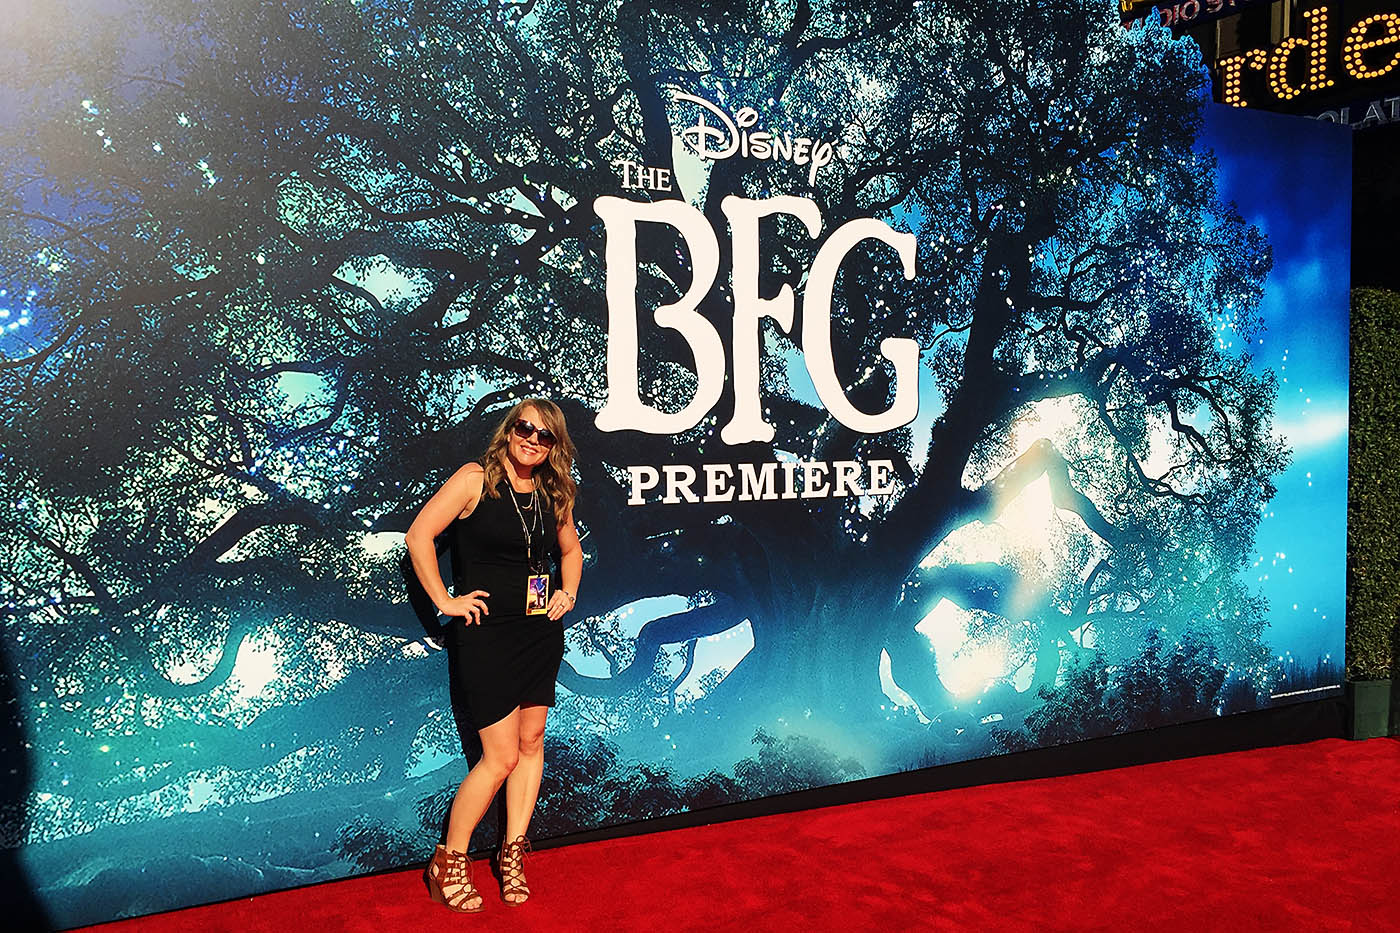 The BFG Red Carpet premiere in Hollywood. Perspective from a first timer #TheBFGEvent